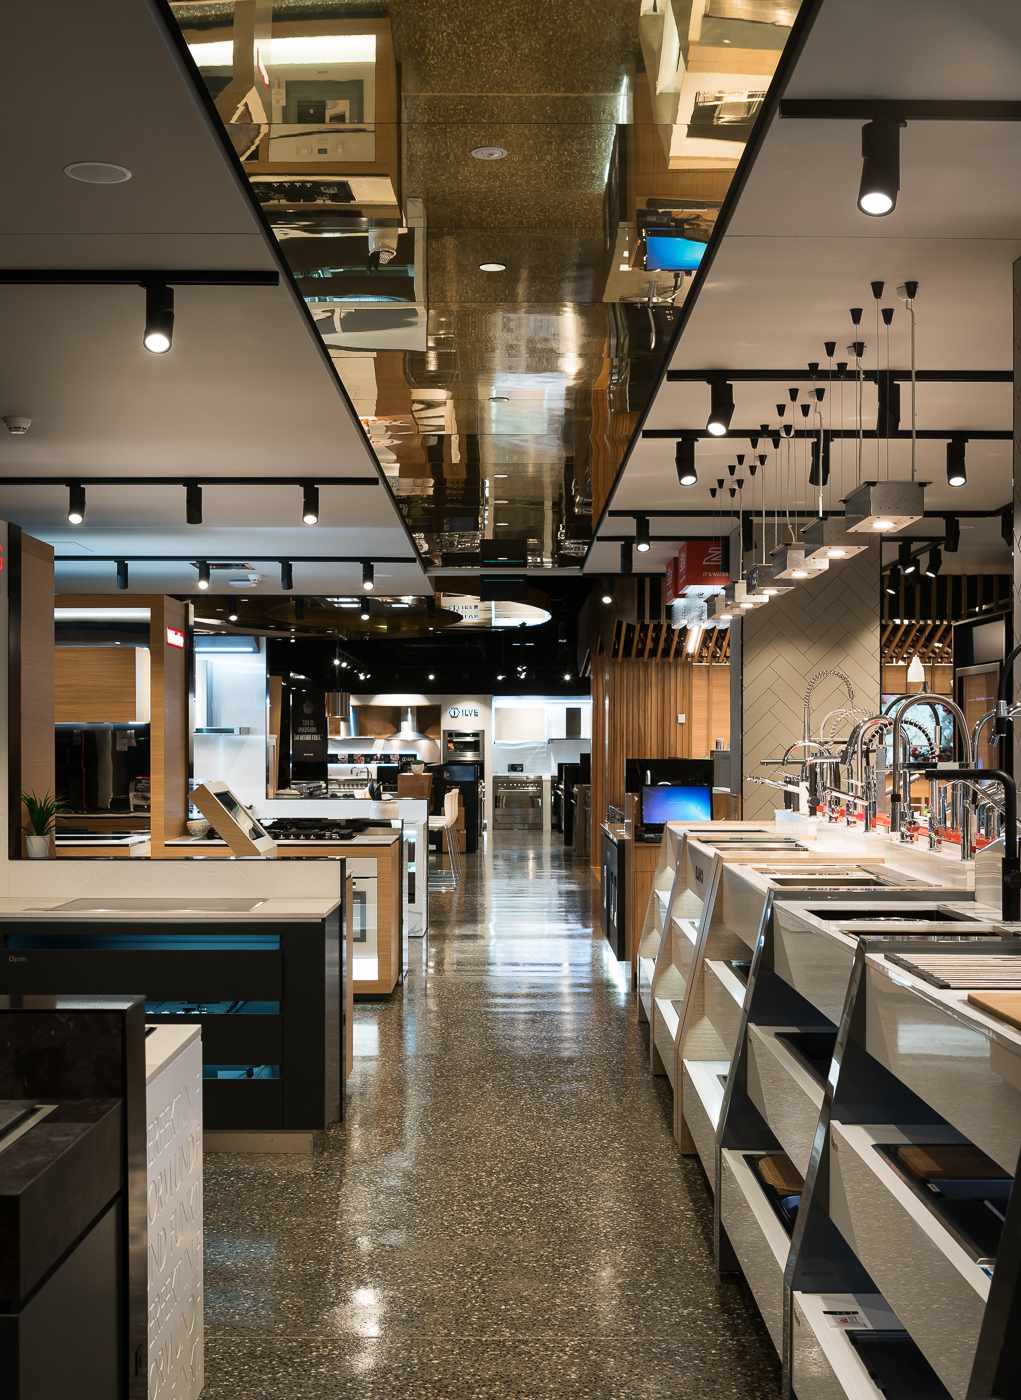 Kitchen Shop Bundall Harvey Norman Cooking Showroom Jbm Projects